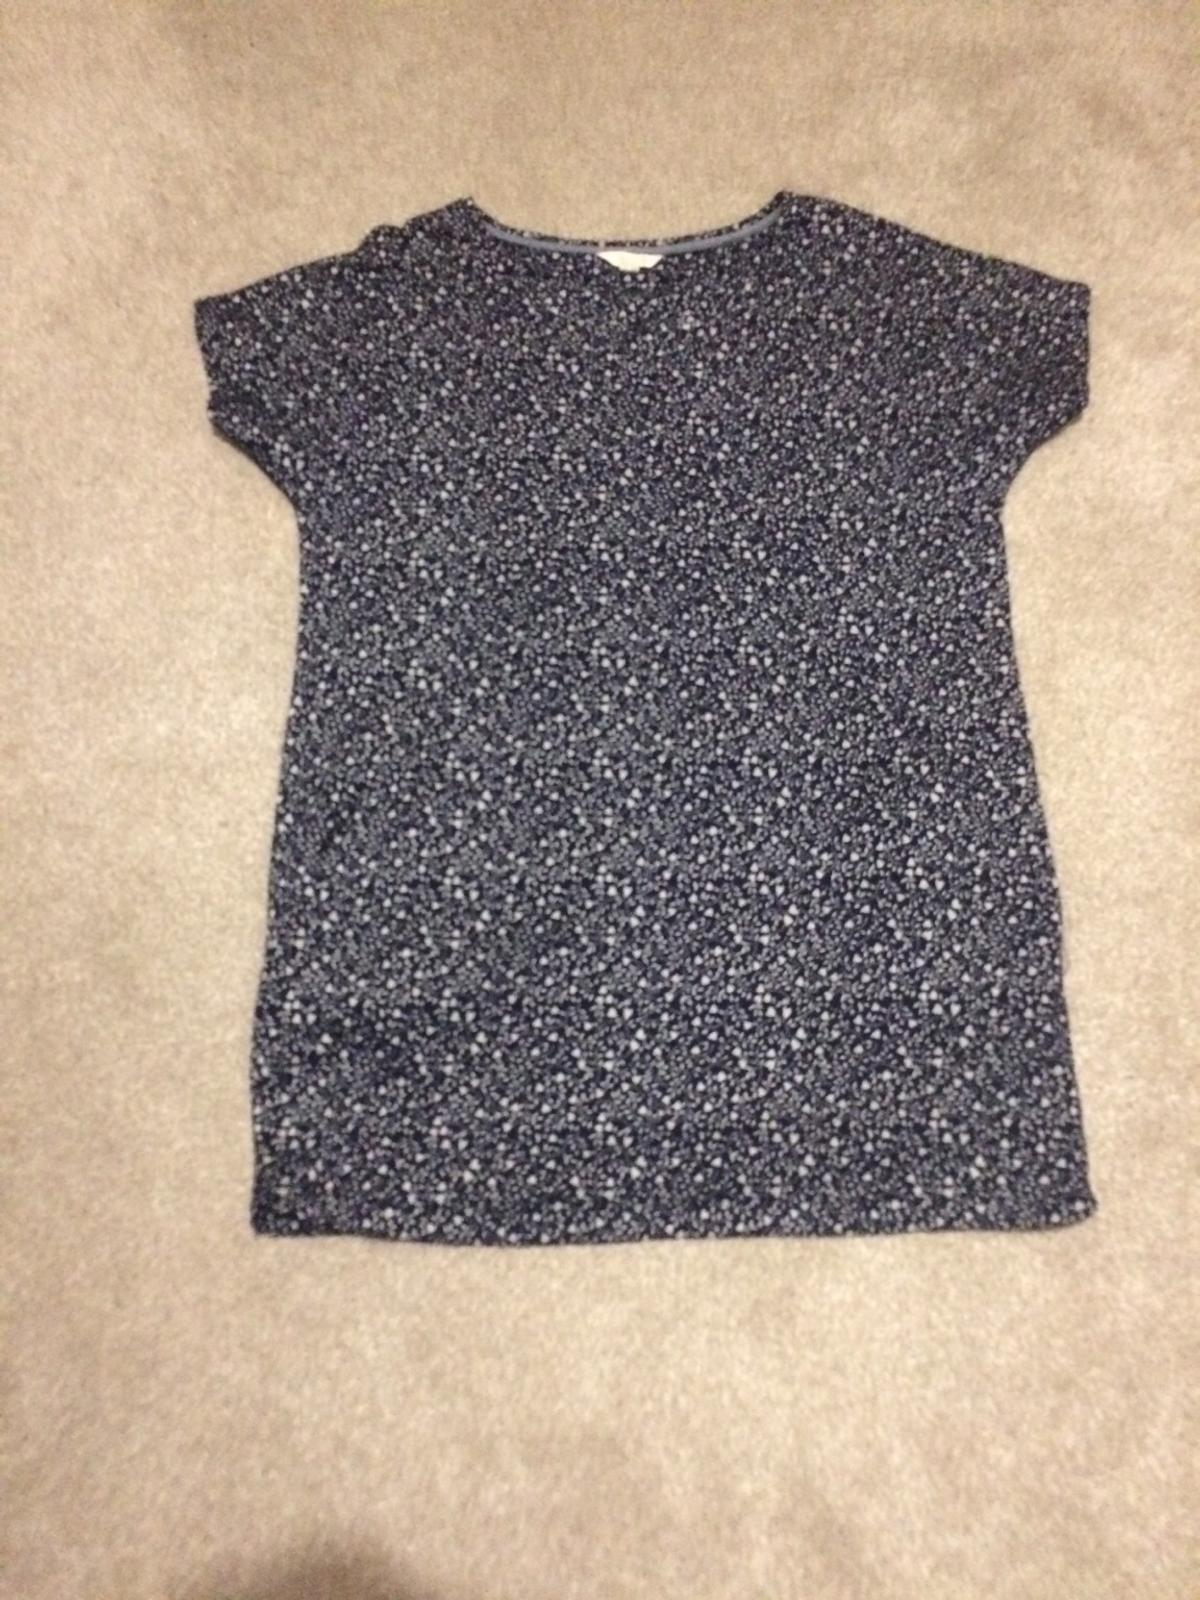 Blue and white White Stuff tunic top size 14. Stretchy so very comfortable with jeans or leggings.